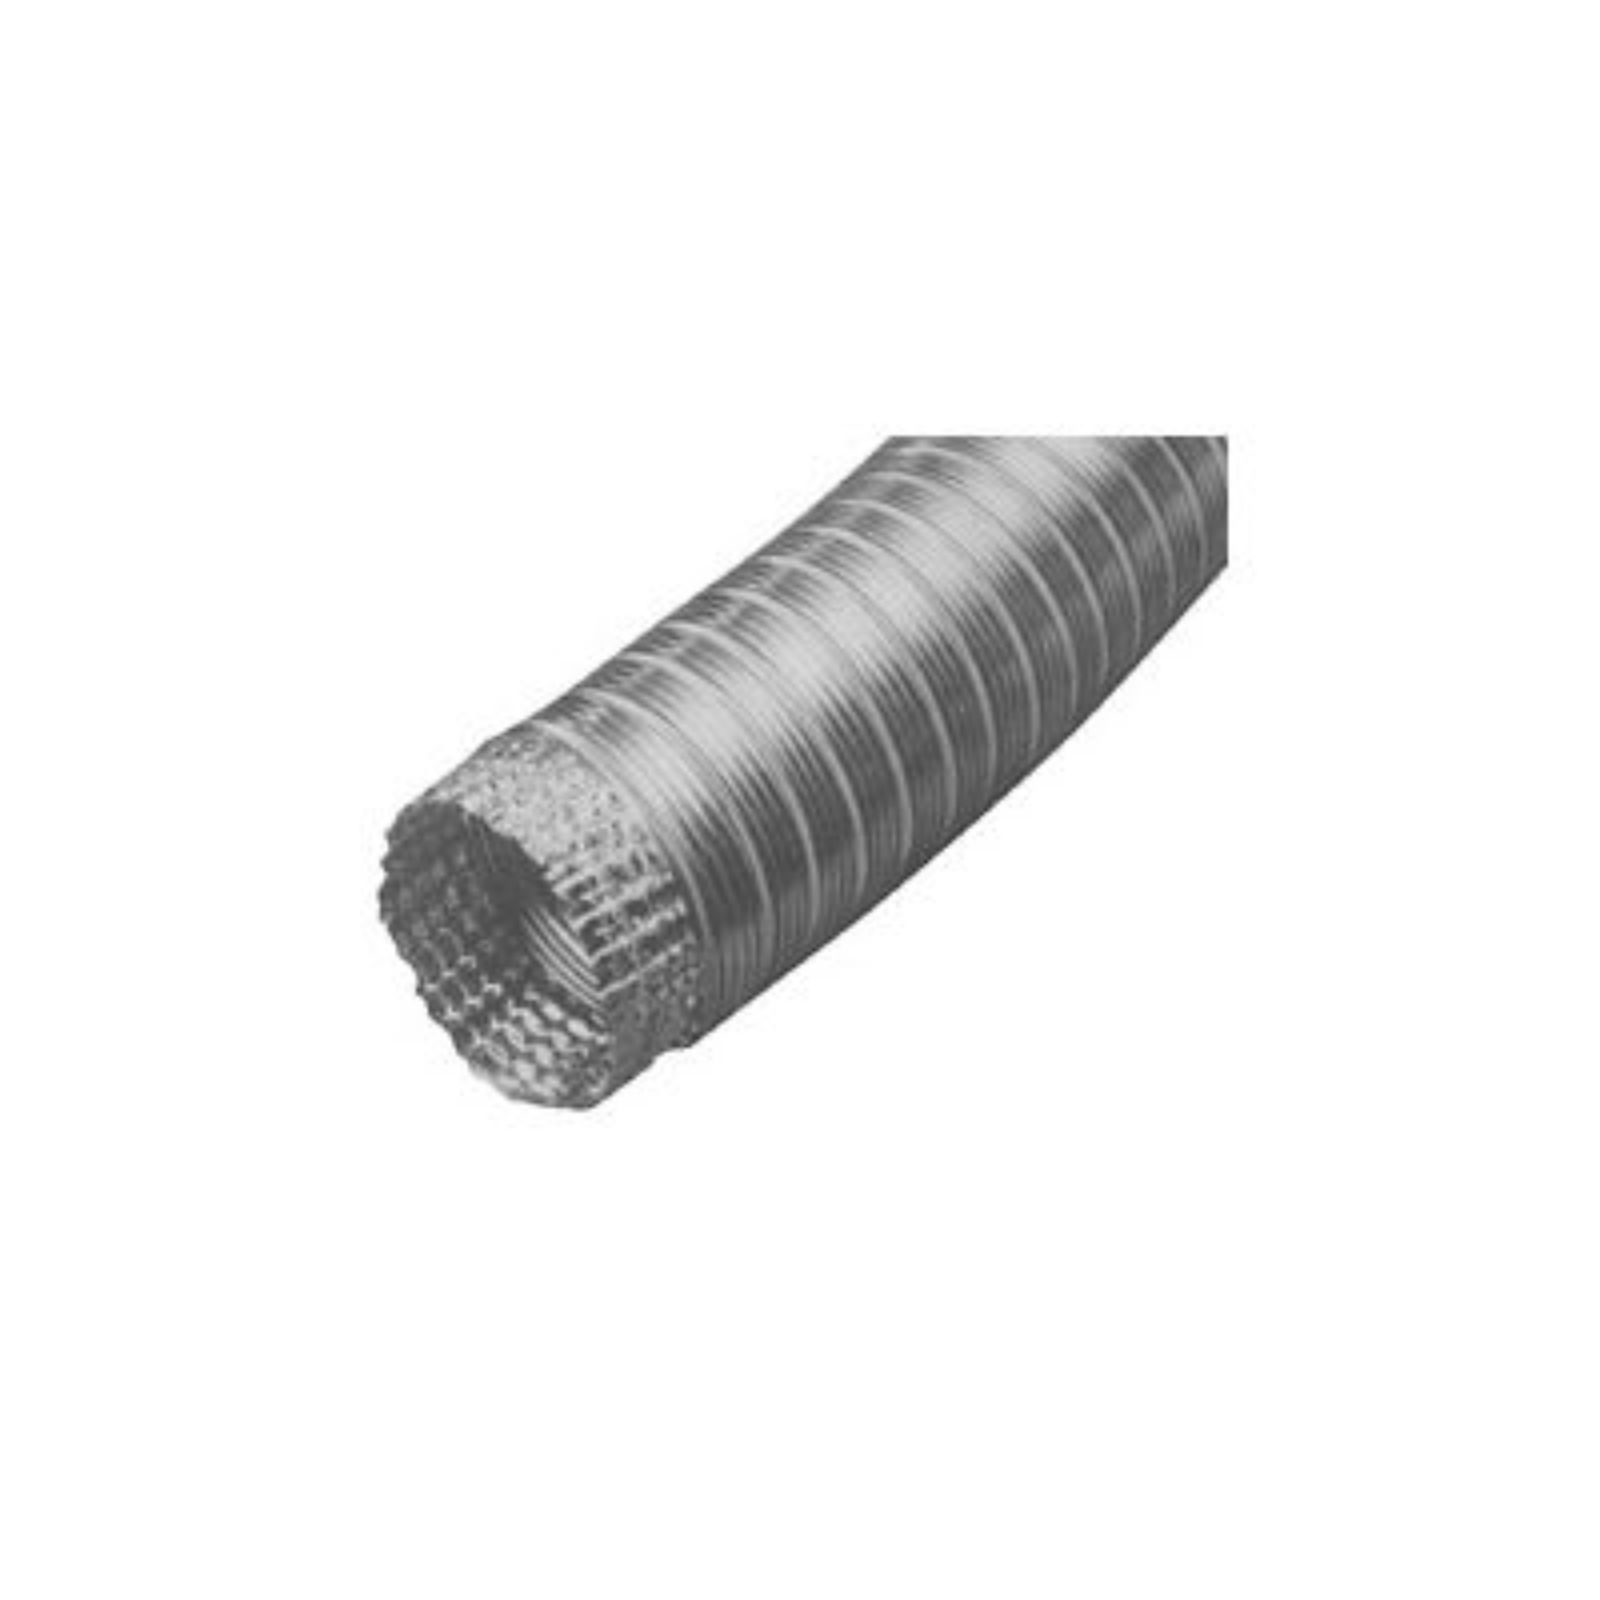 "Snappy 931-08 - # Aluminum Flex 8"" x 8' Compressed"